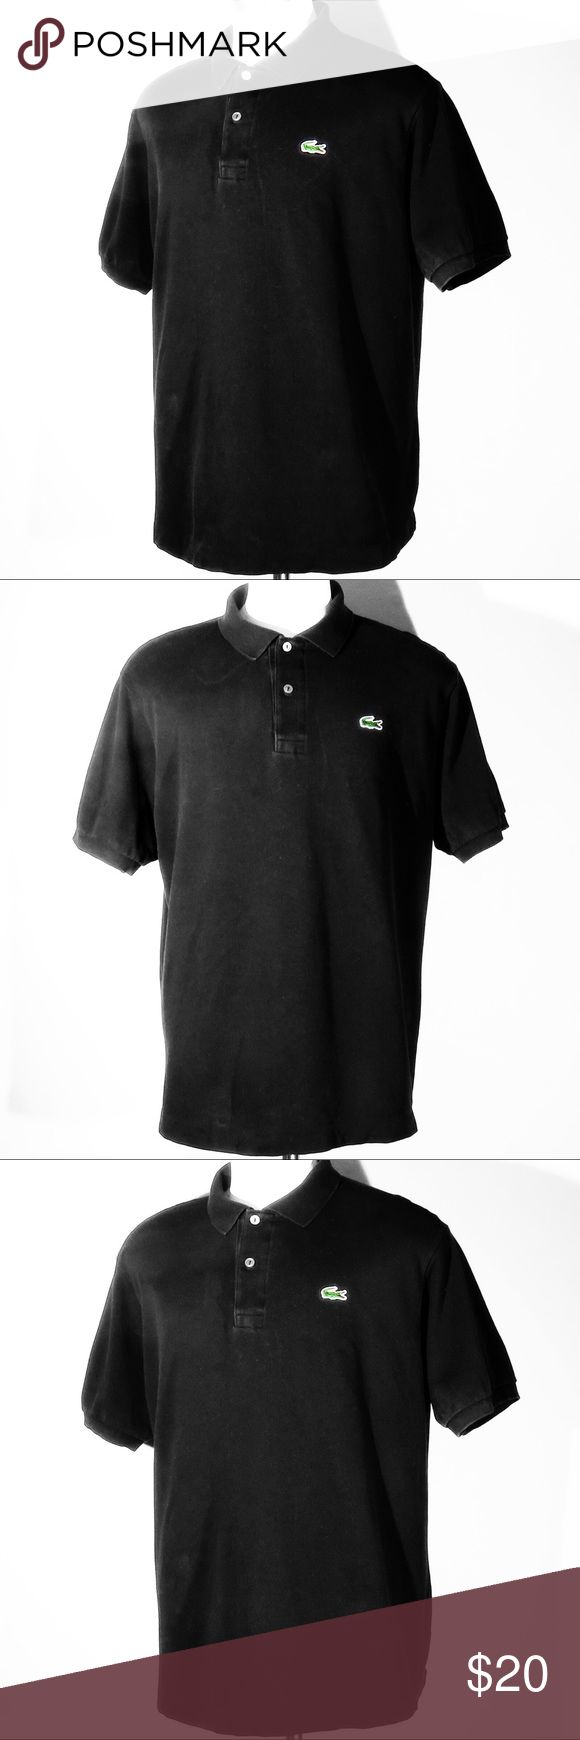 Lacoste Men's Polo Shirt Black Size 7 (XL) Up for sale is my Lacoste Polo Shirt in a black color way; men's size 7 (XL)  It is in a 8/10 condition rating $85 retails price + NYC tax and today I'm selling this shirt for $20  Please message me for more information and/or photos! Lacoste Shirts Polos